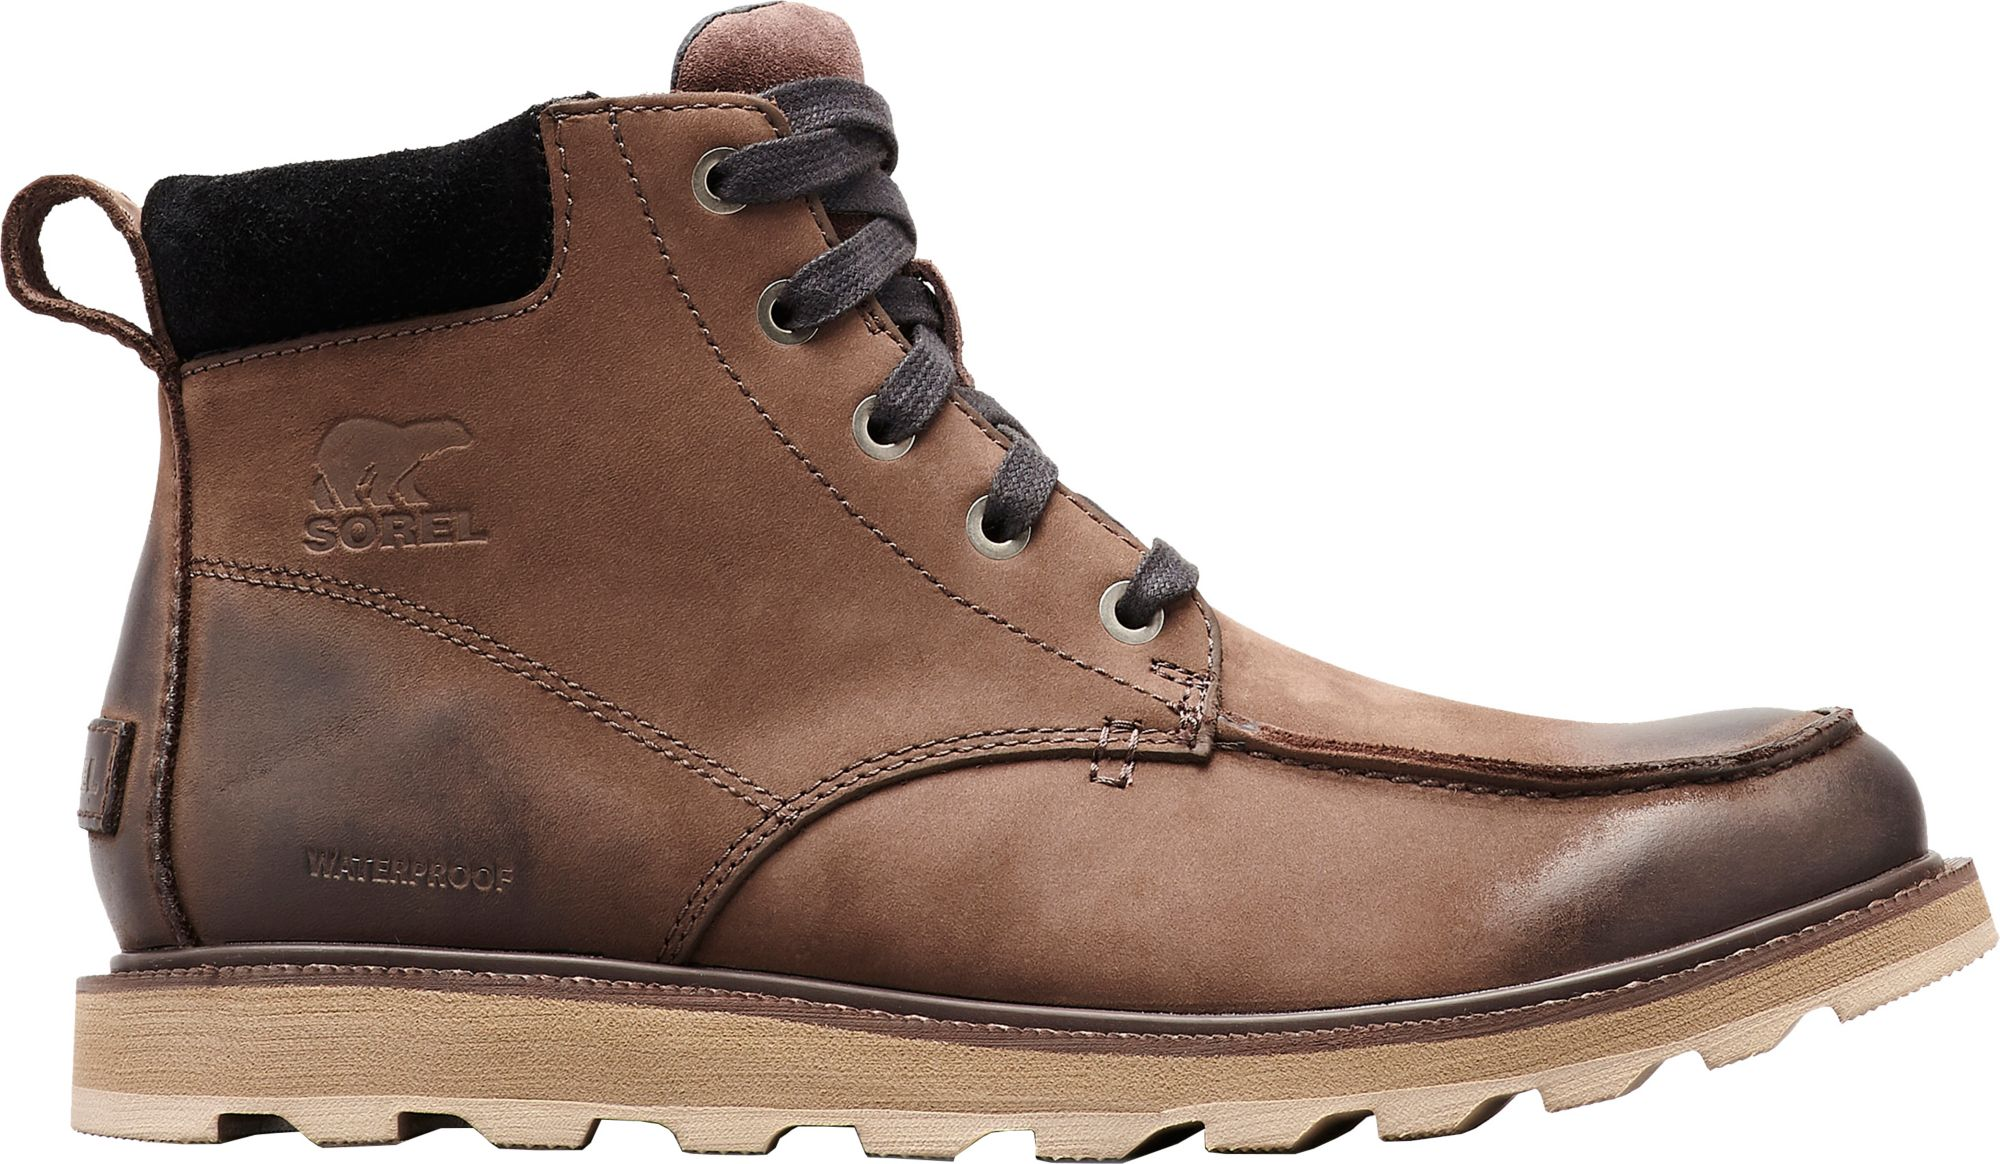 Madson Moc Toe Waterproof Casual Boots